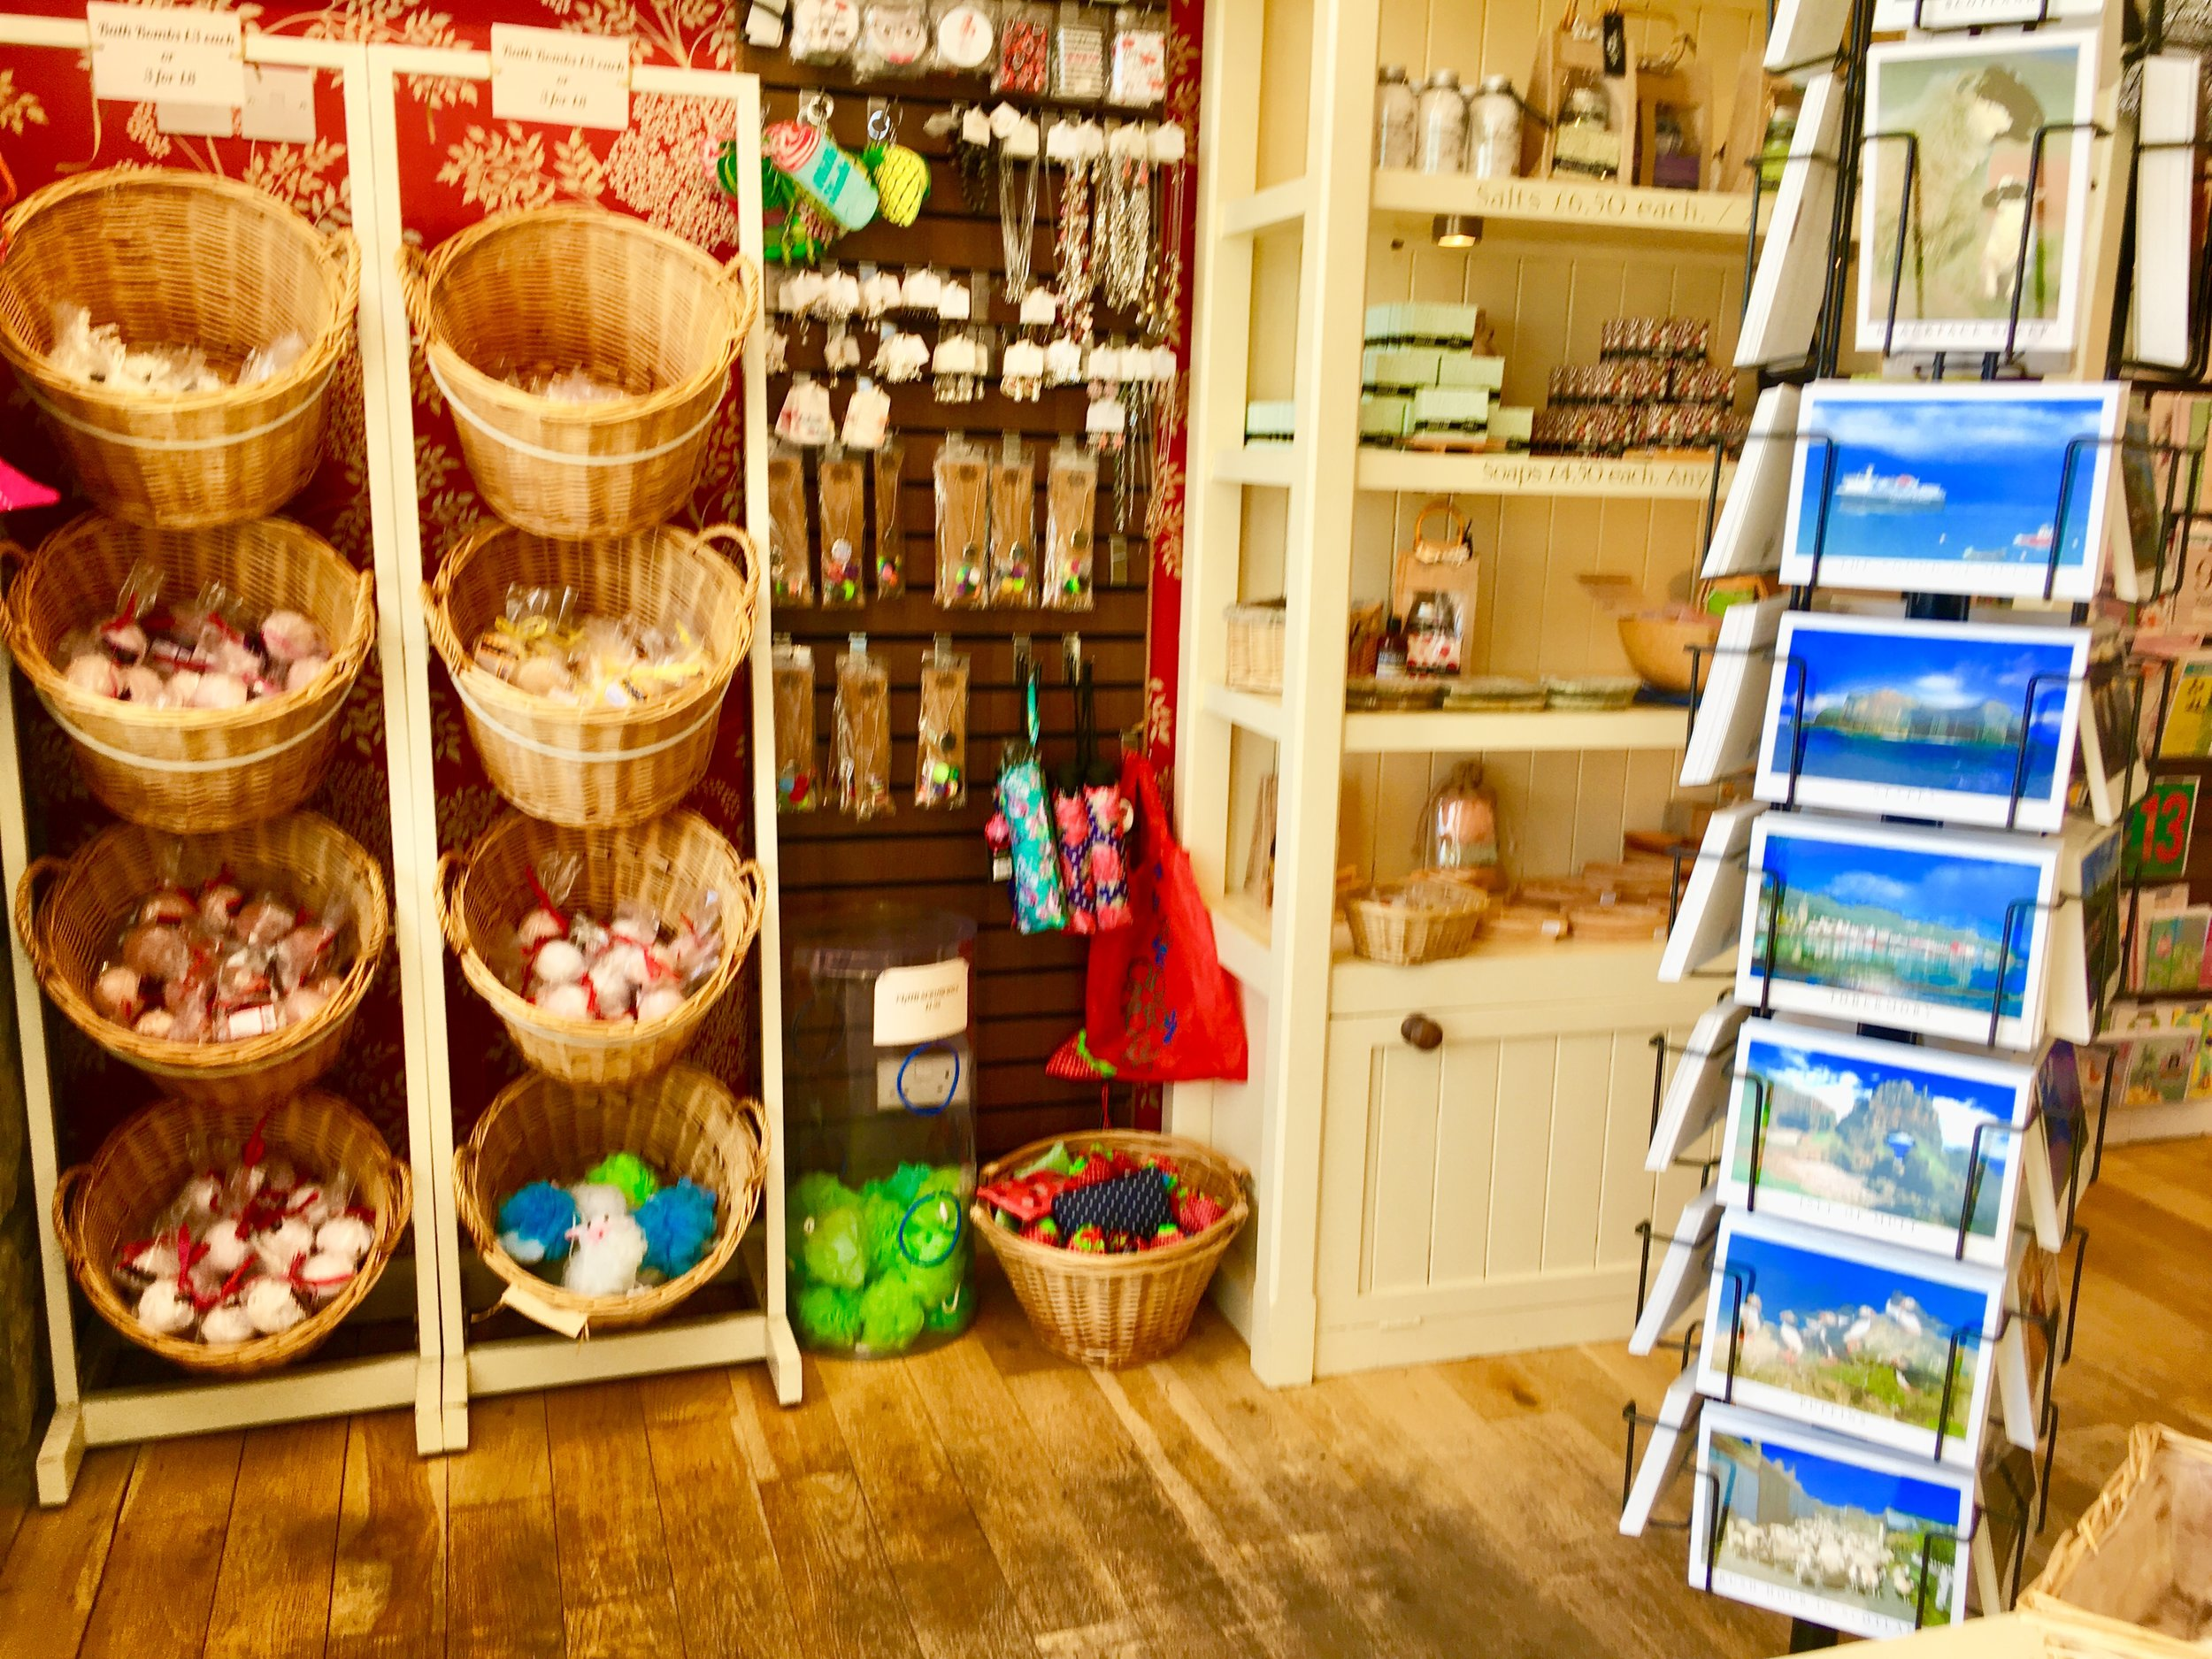 Isle of Mull Soap Co. also offers bath bombs, bath and body and great gifts to remind you of your stay in Tobermory.